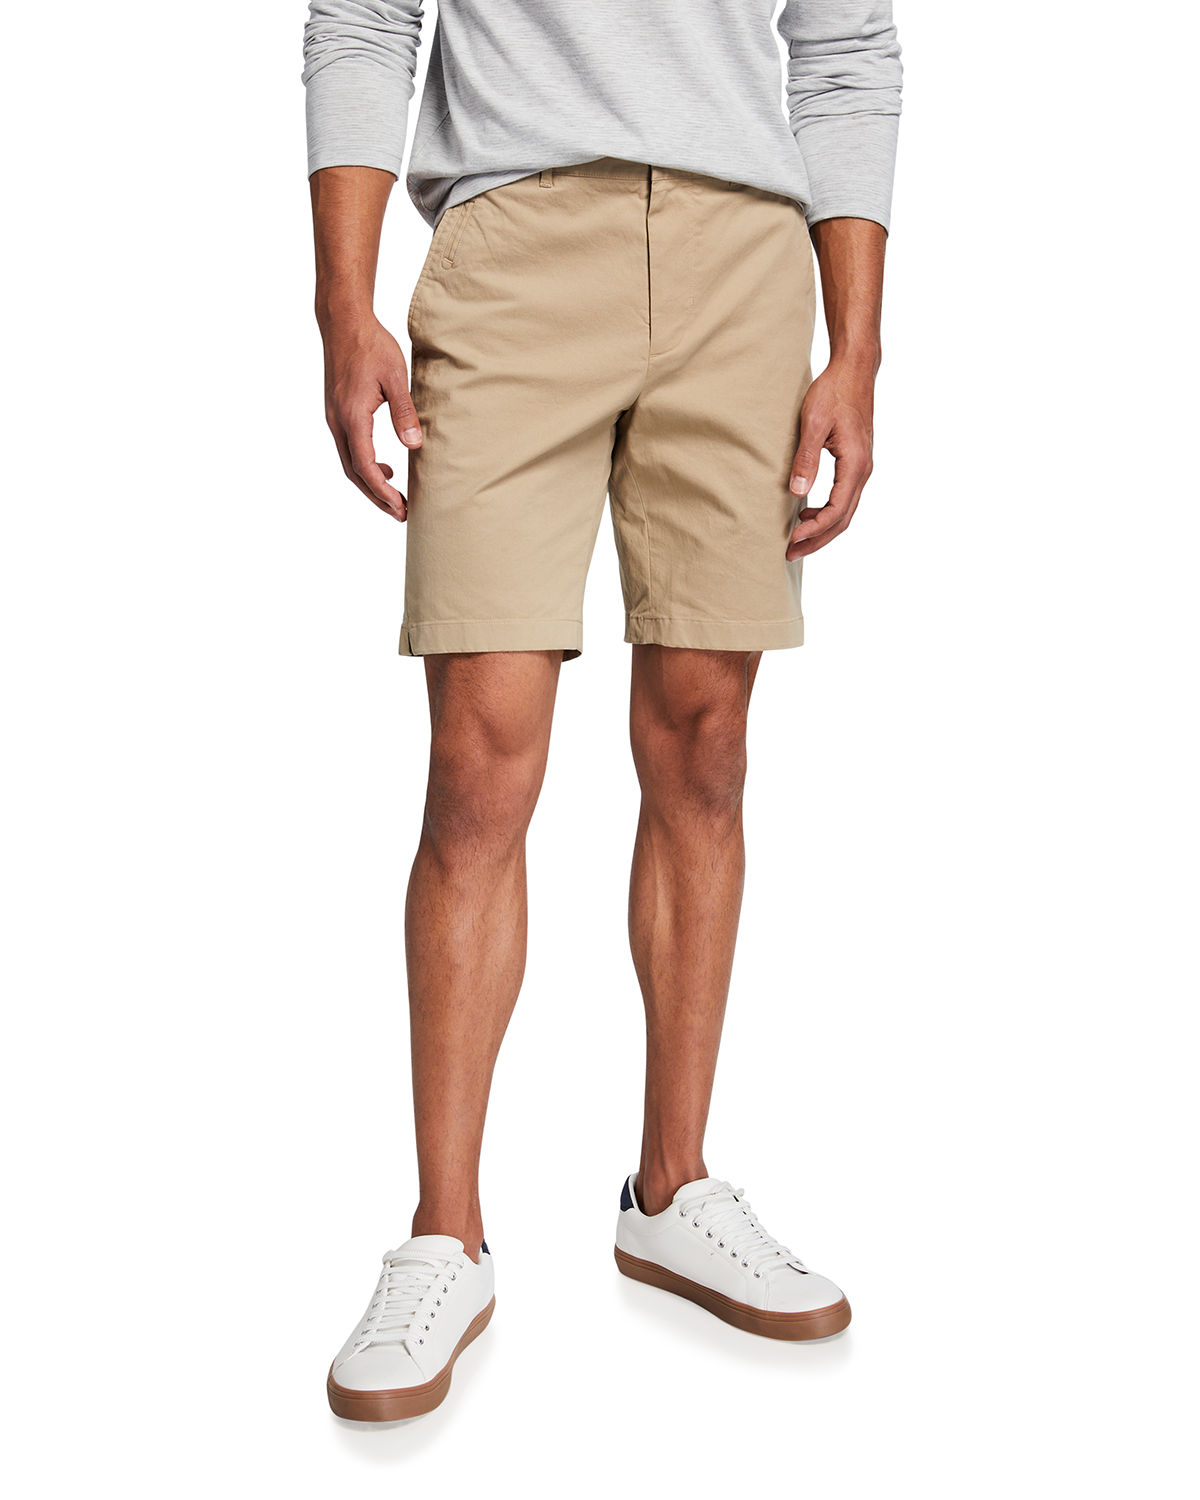 Vince Shorts MEN'S GRIFFITH LIGHTWEIGHT CHINO SHORTS